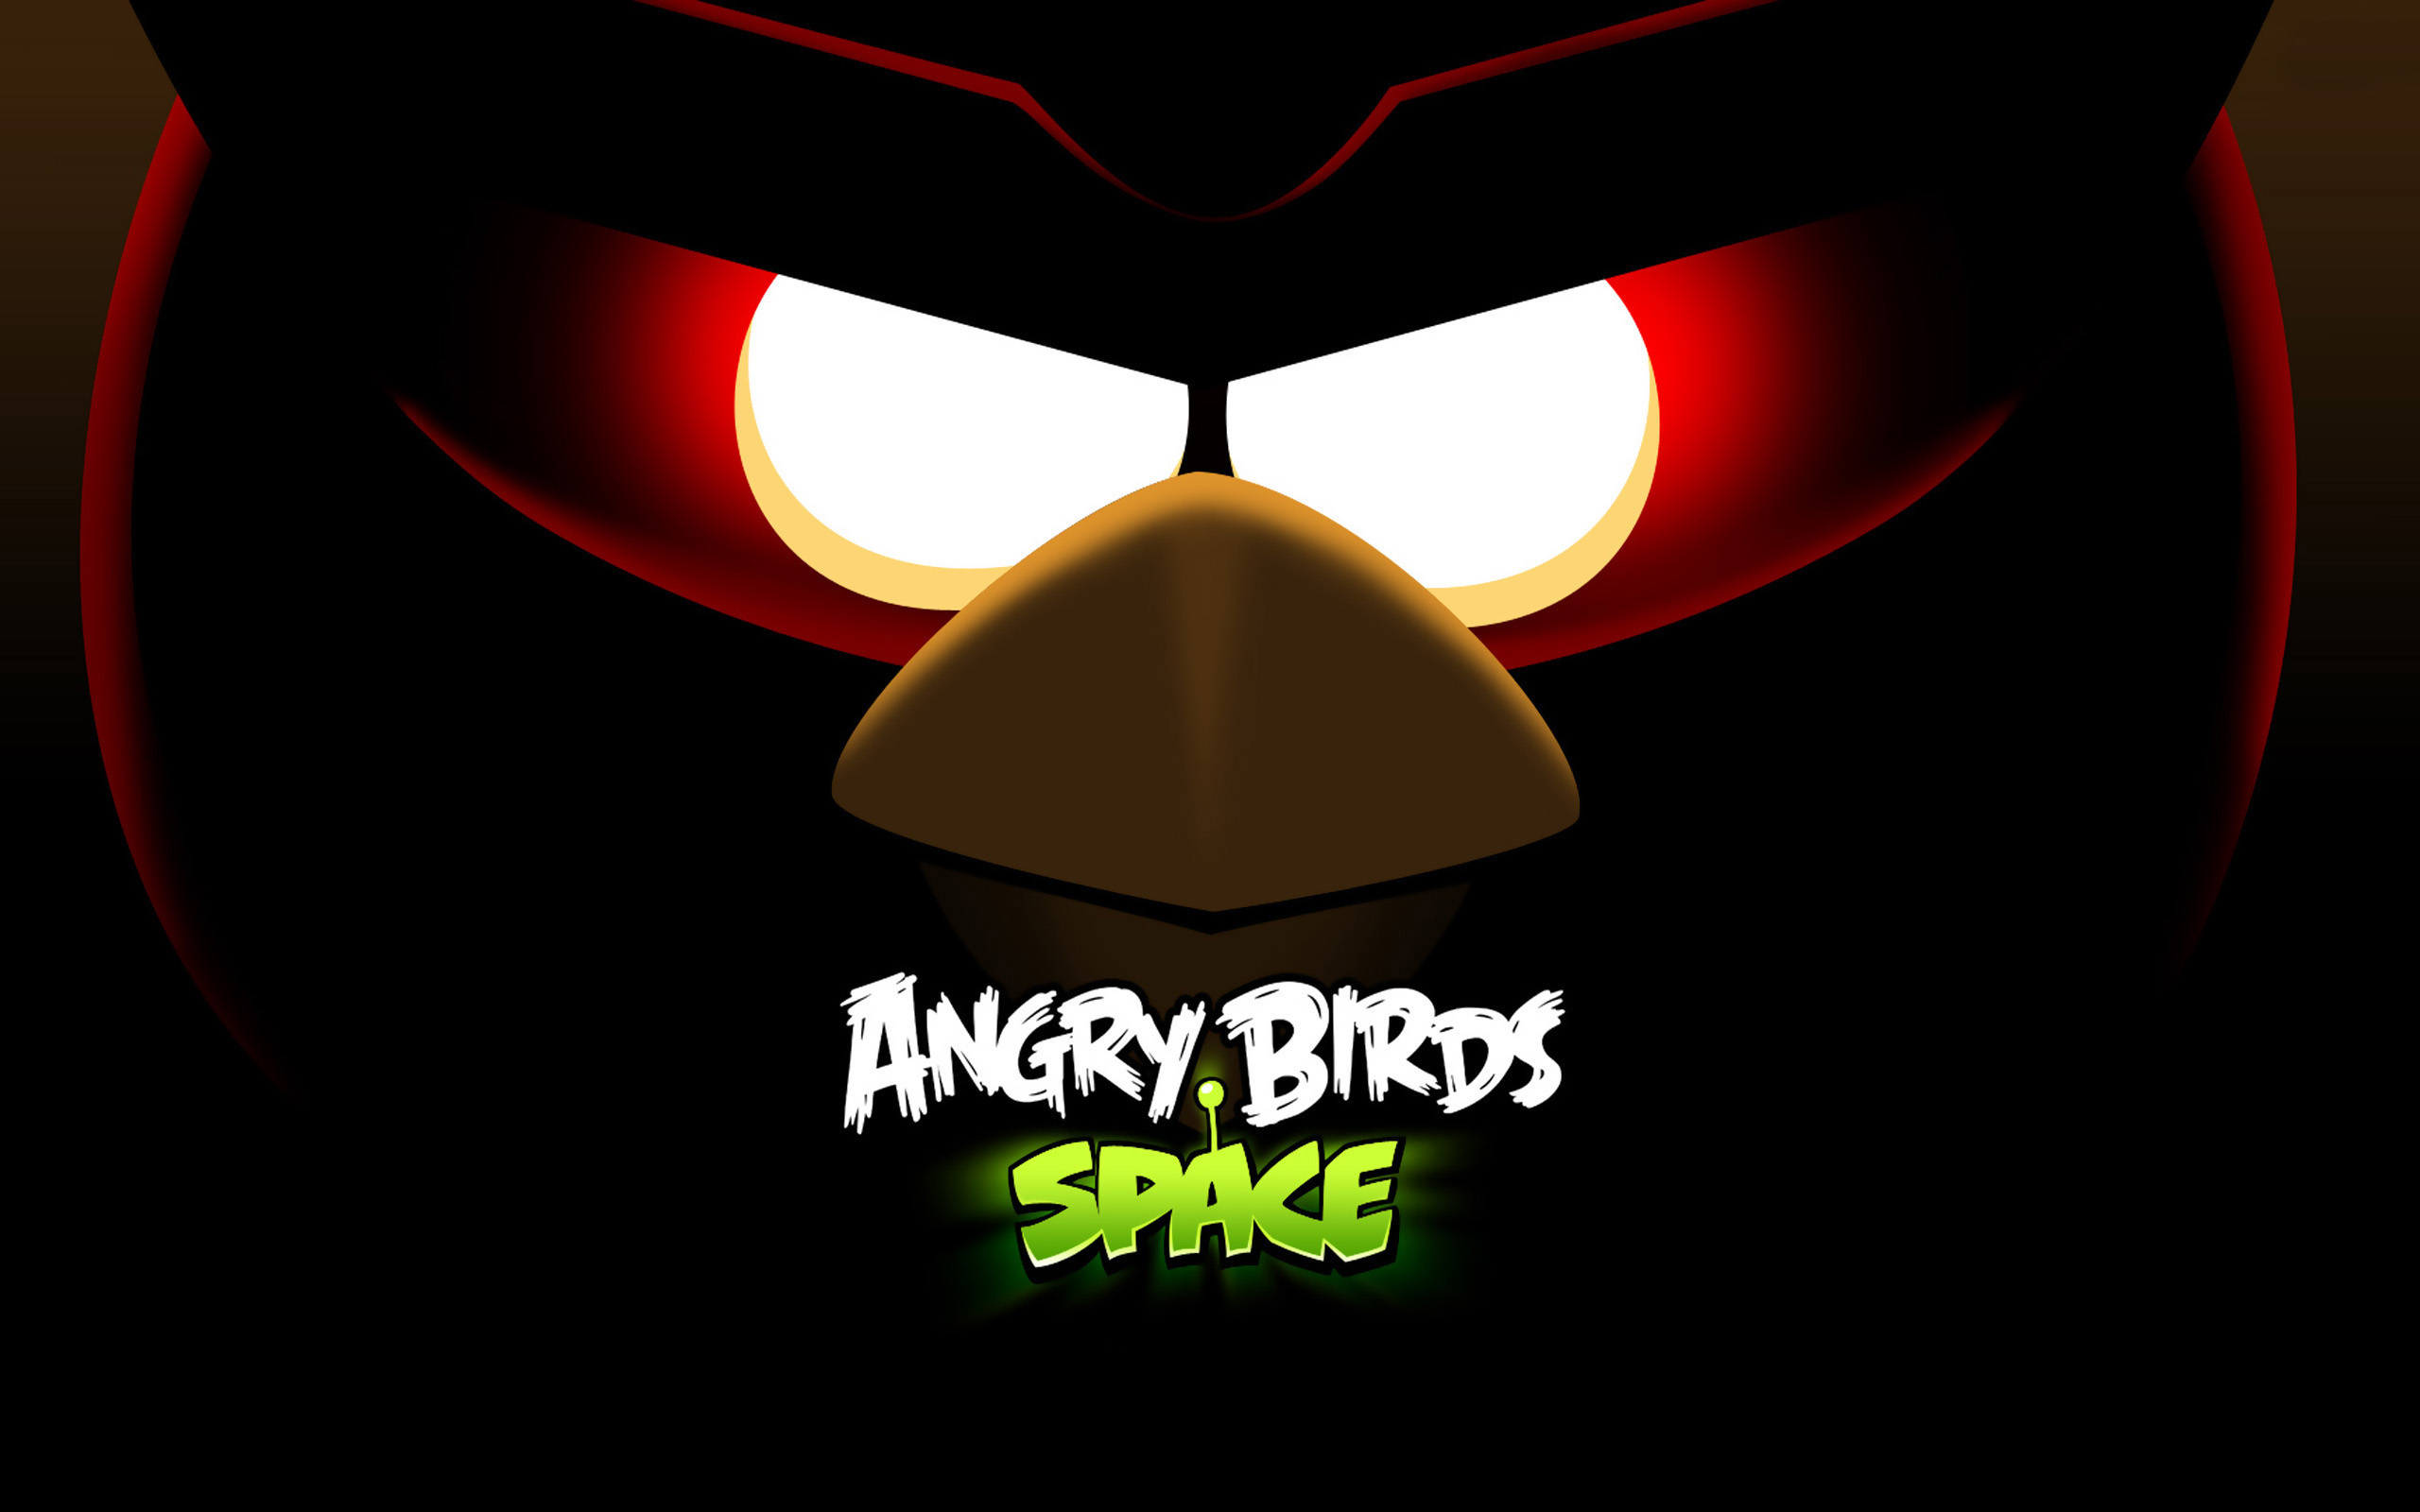 6 angry birds space hd wallpapers | background images - wallpaper abyss